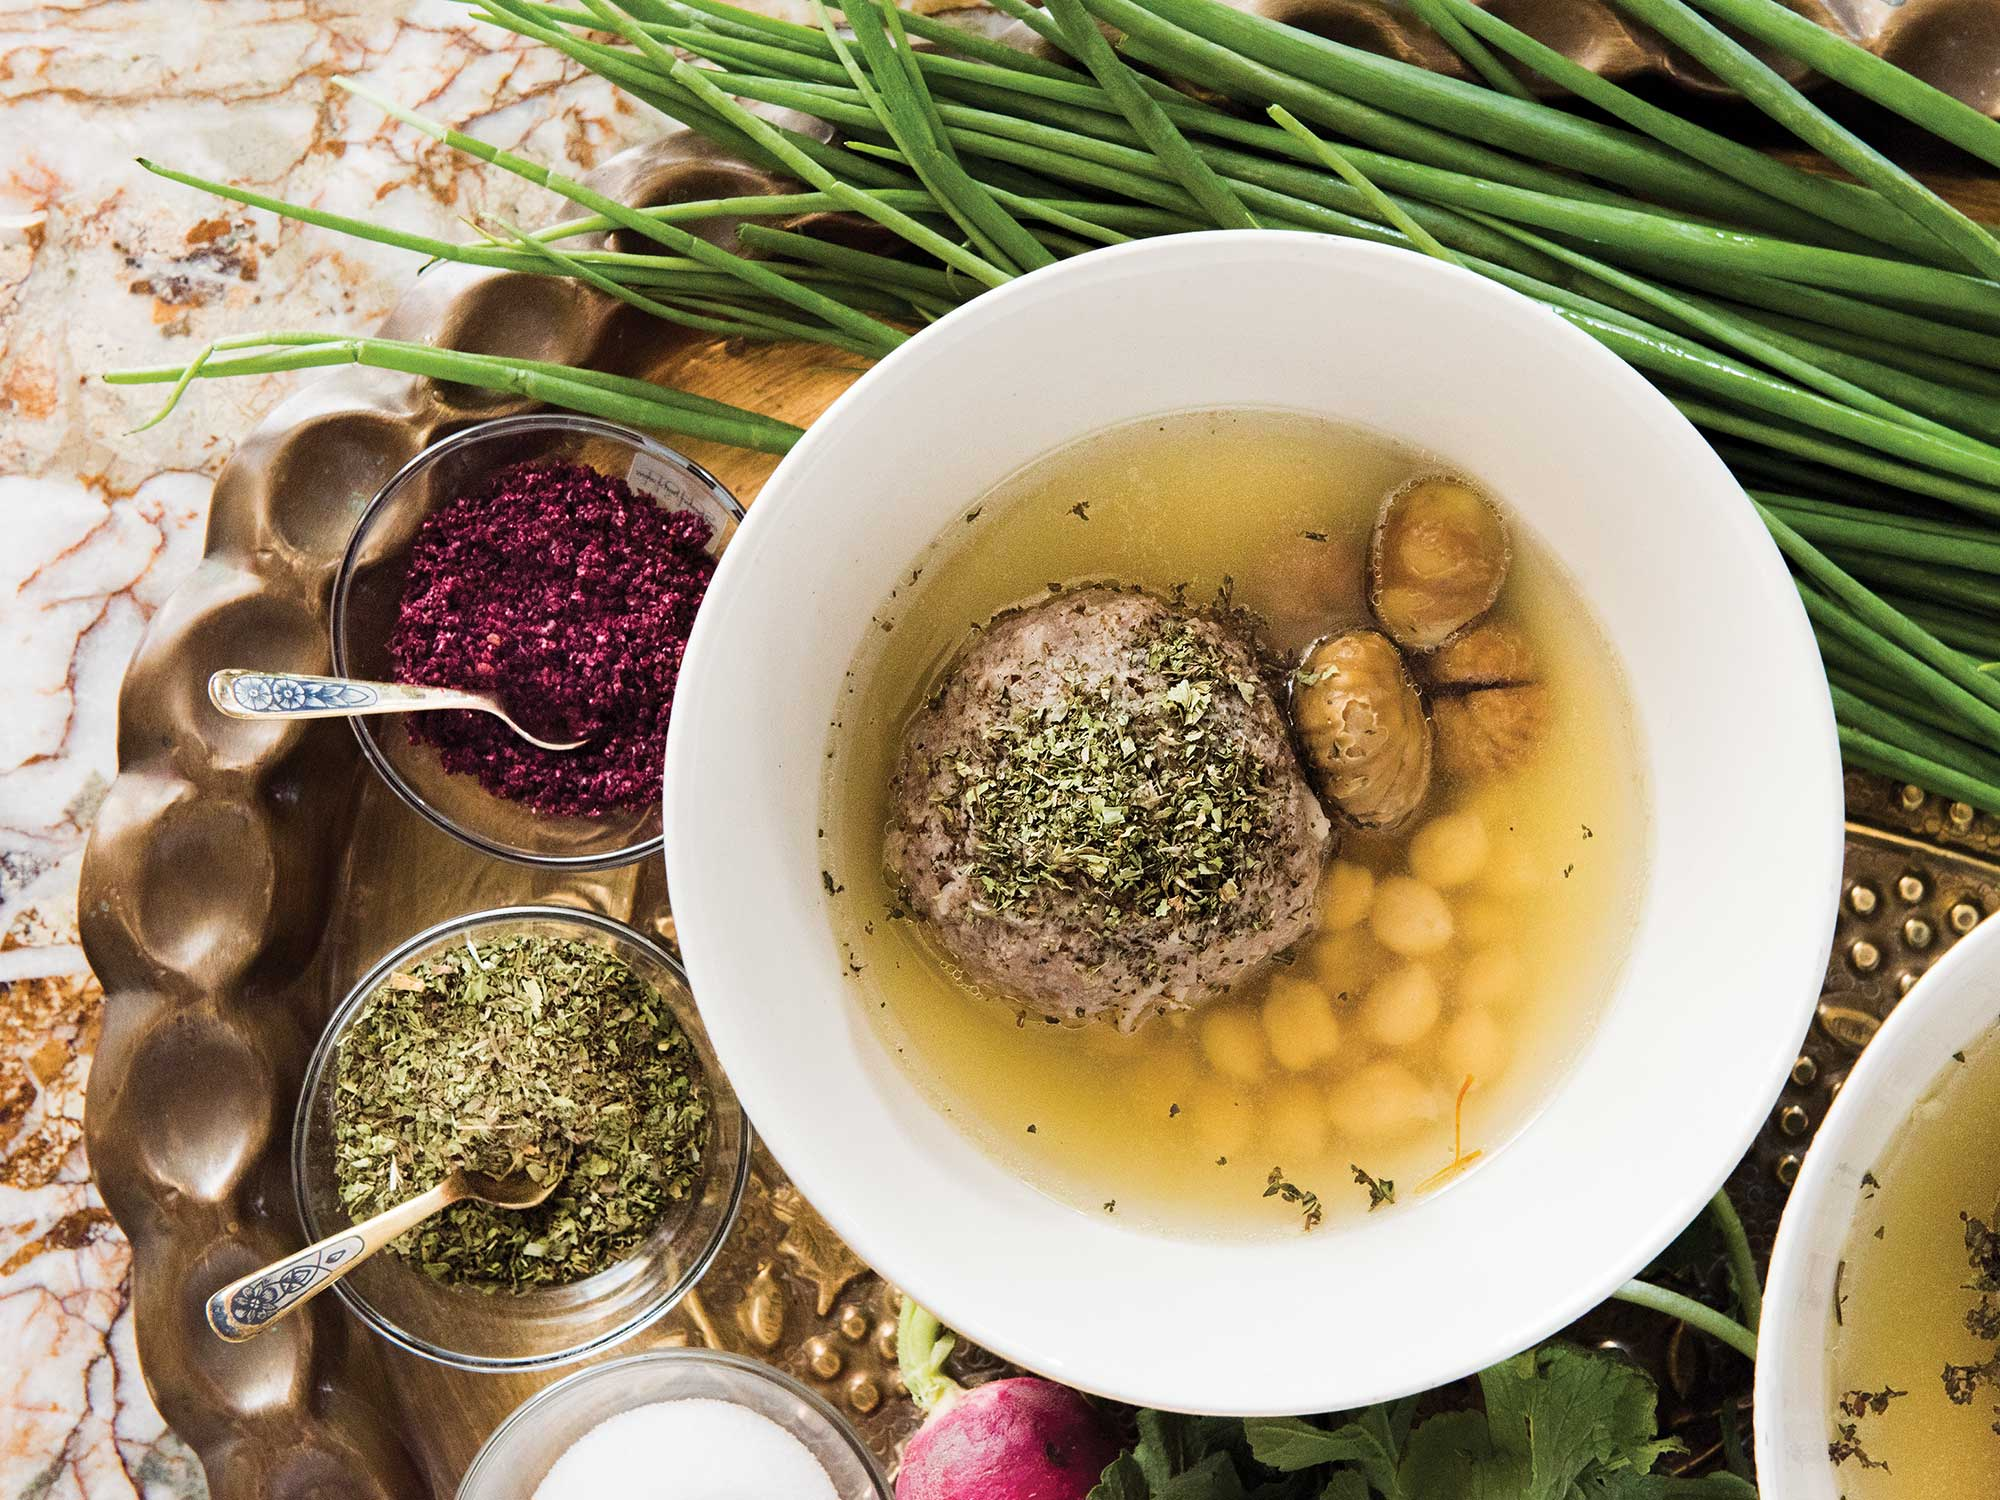 Go Make This Magical Stuffed Meatball Soup